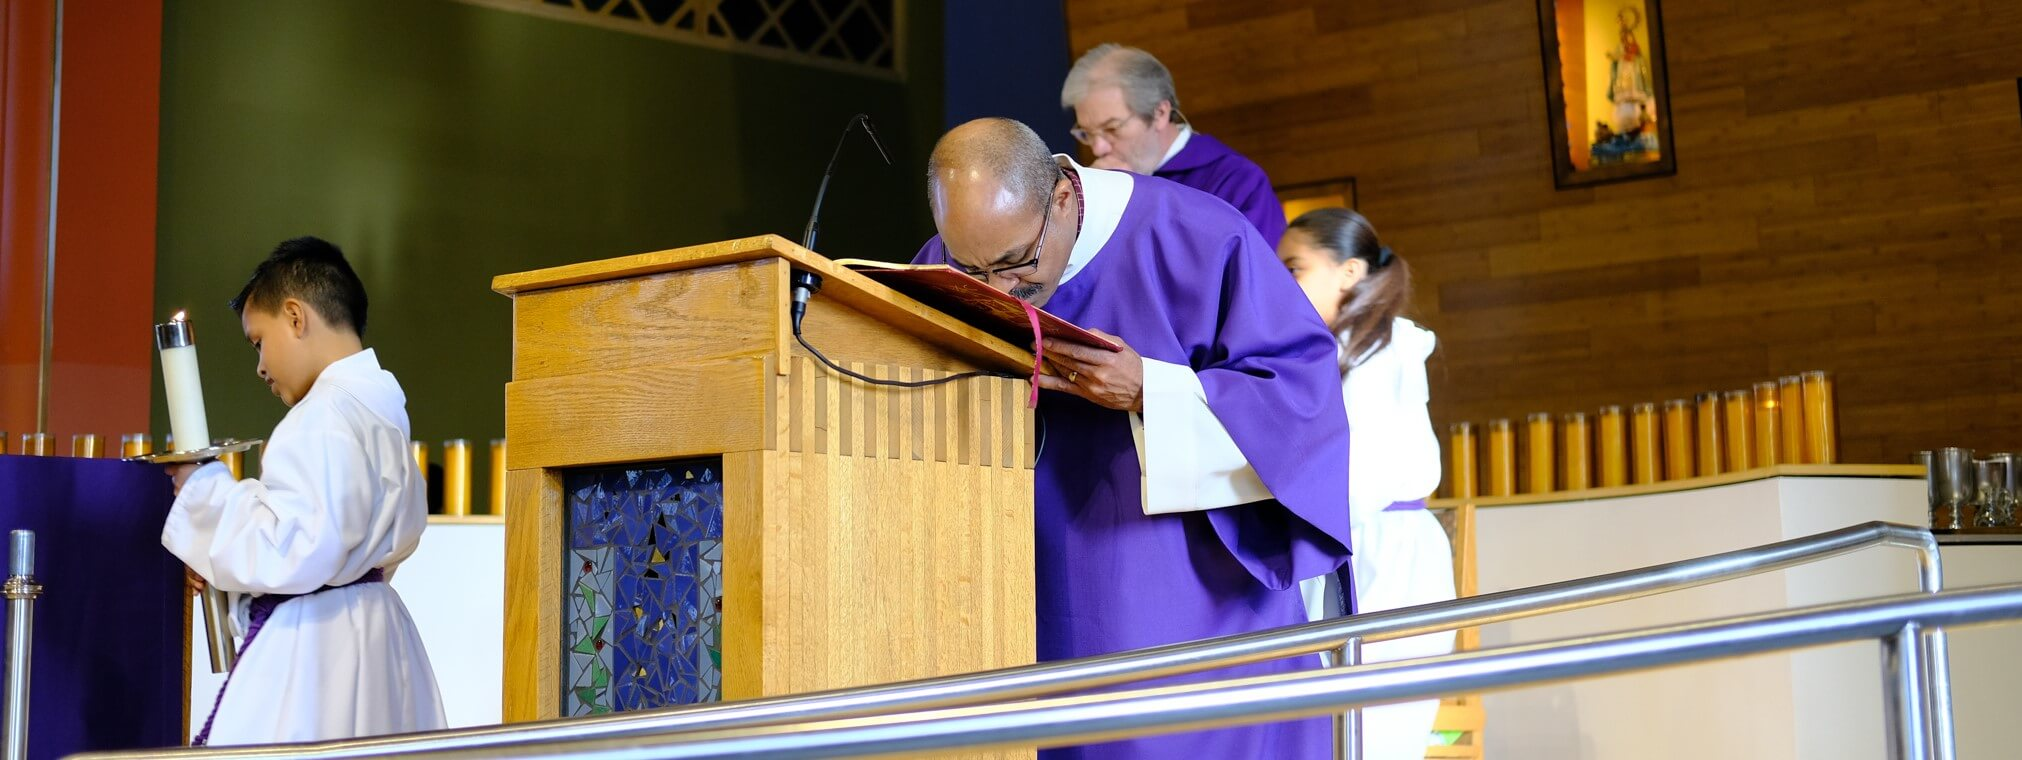 Deacon Carlos Guiterrez kisses the Book of Gospels after the Sunday reading at Saint Joseph the Worker parish